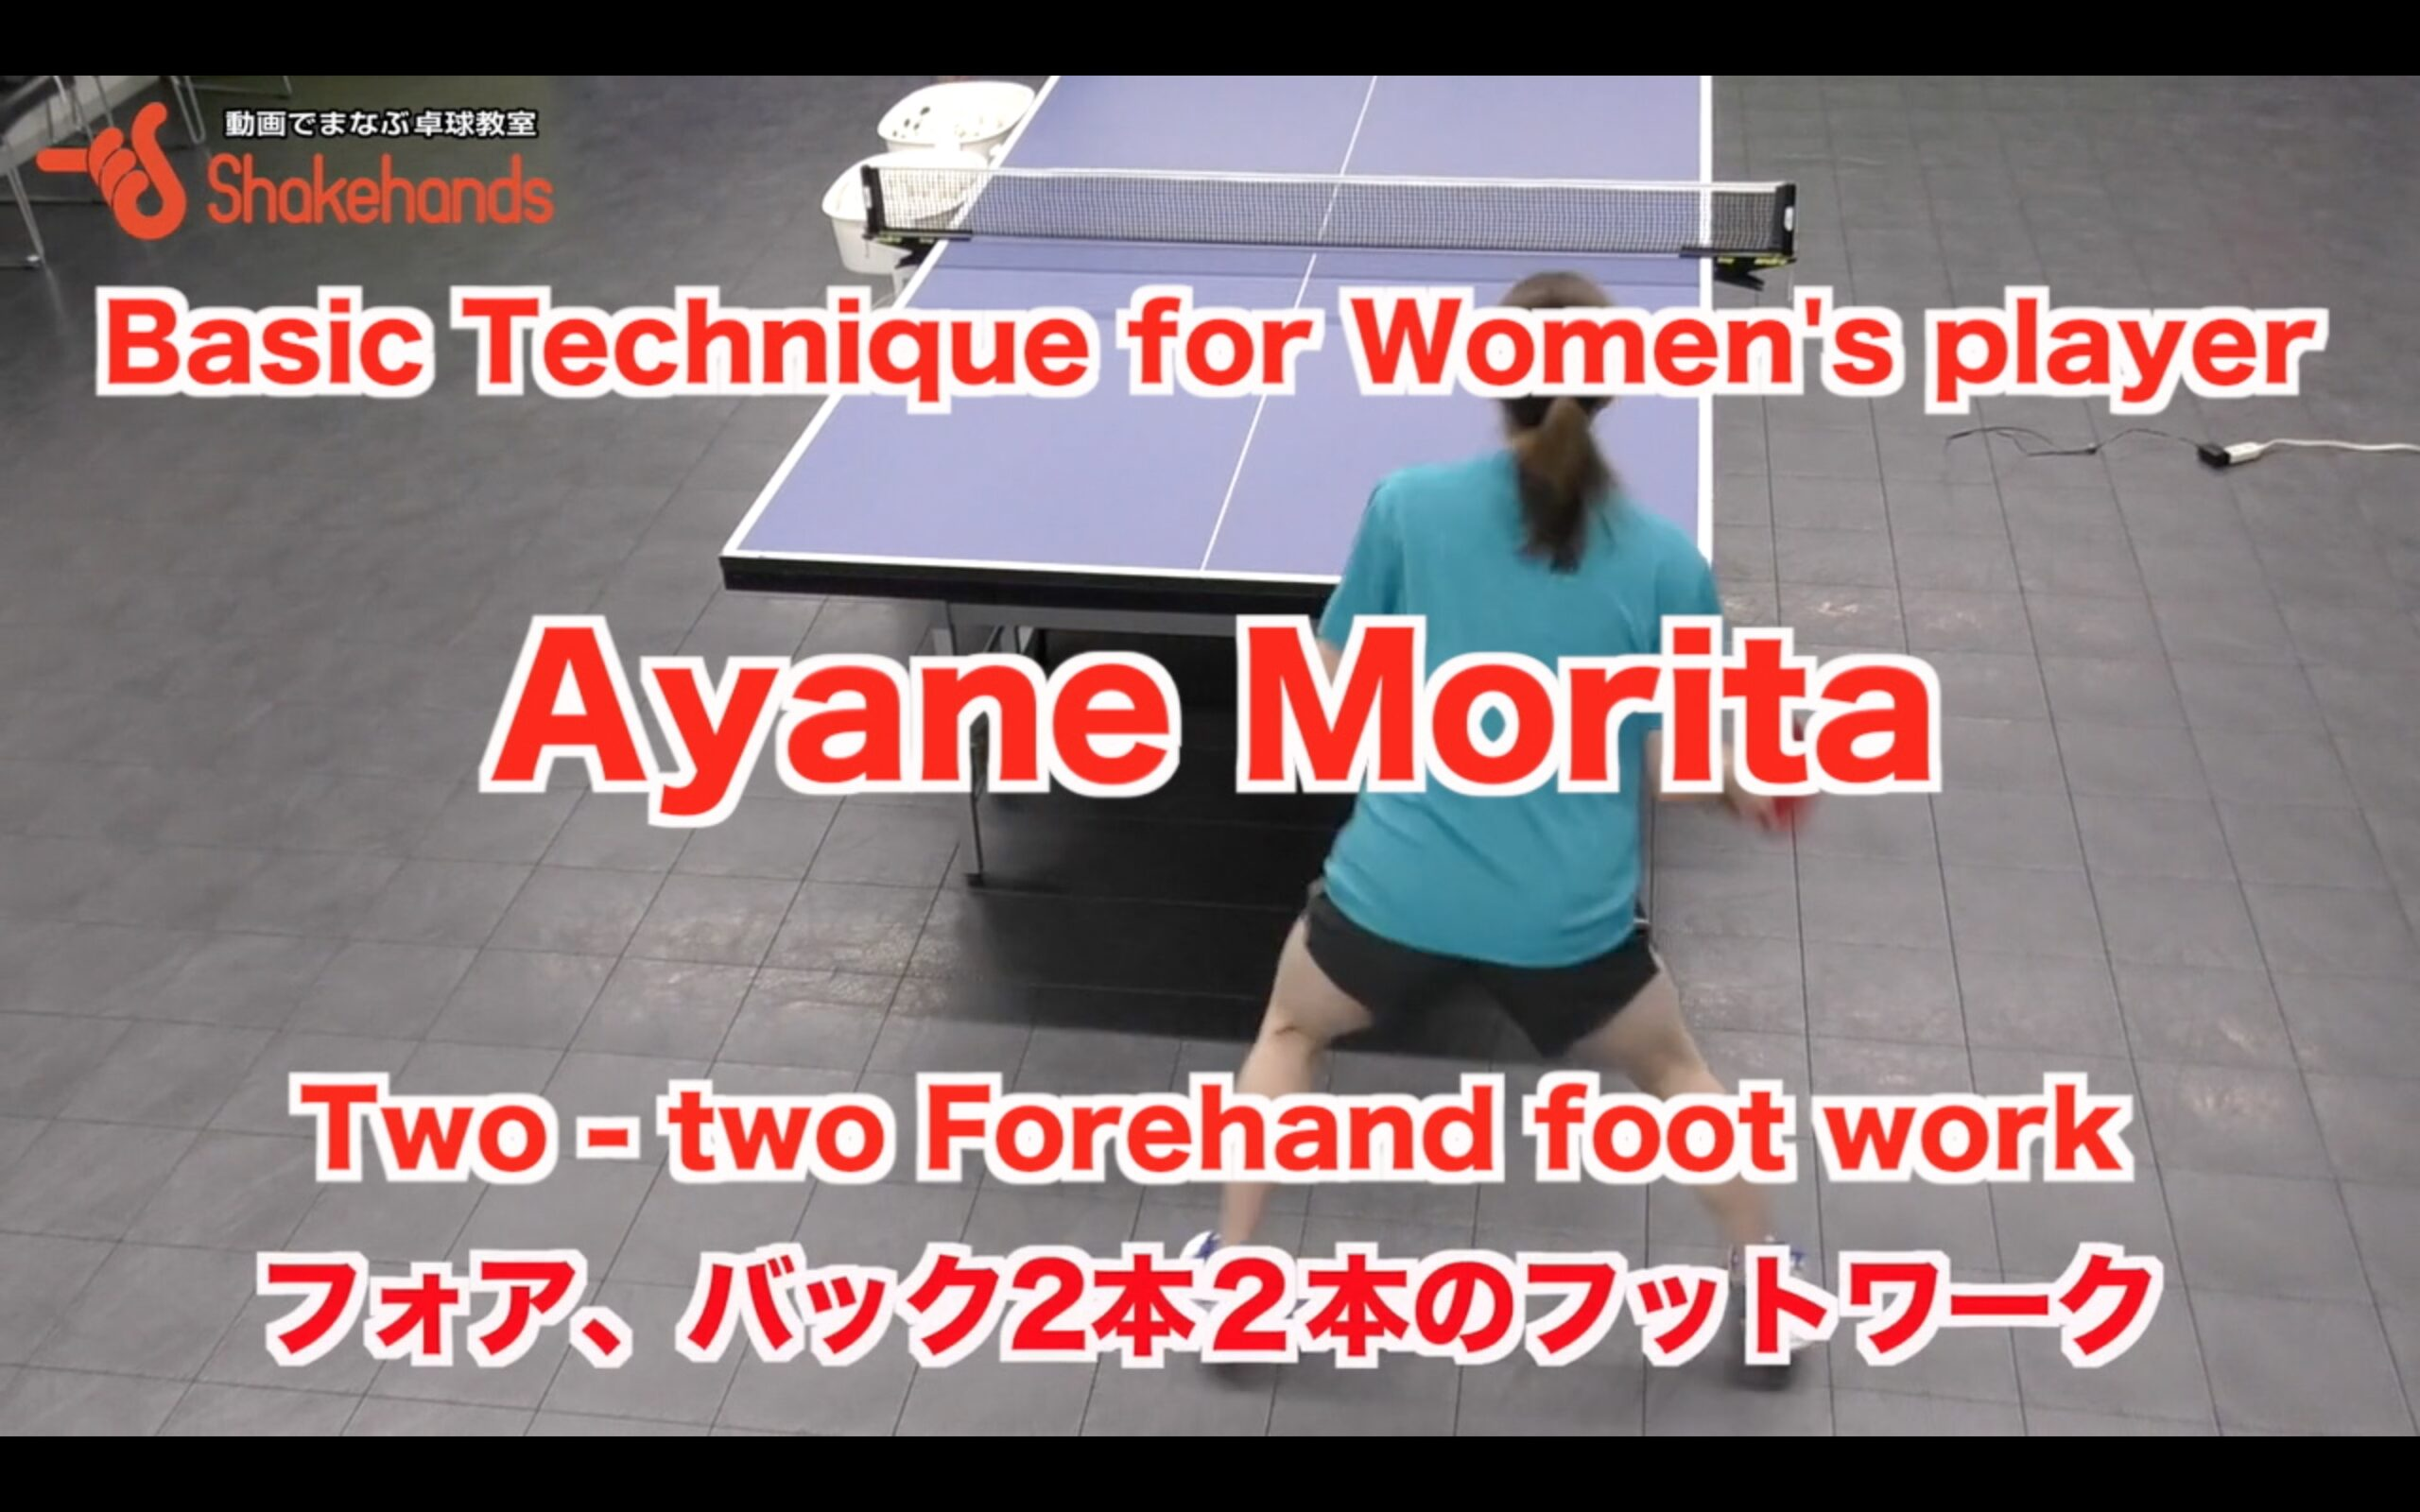 Two - two FH foot work